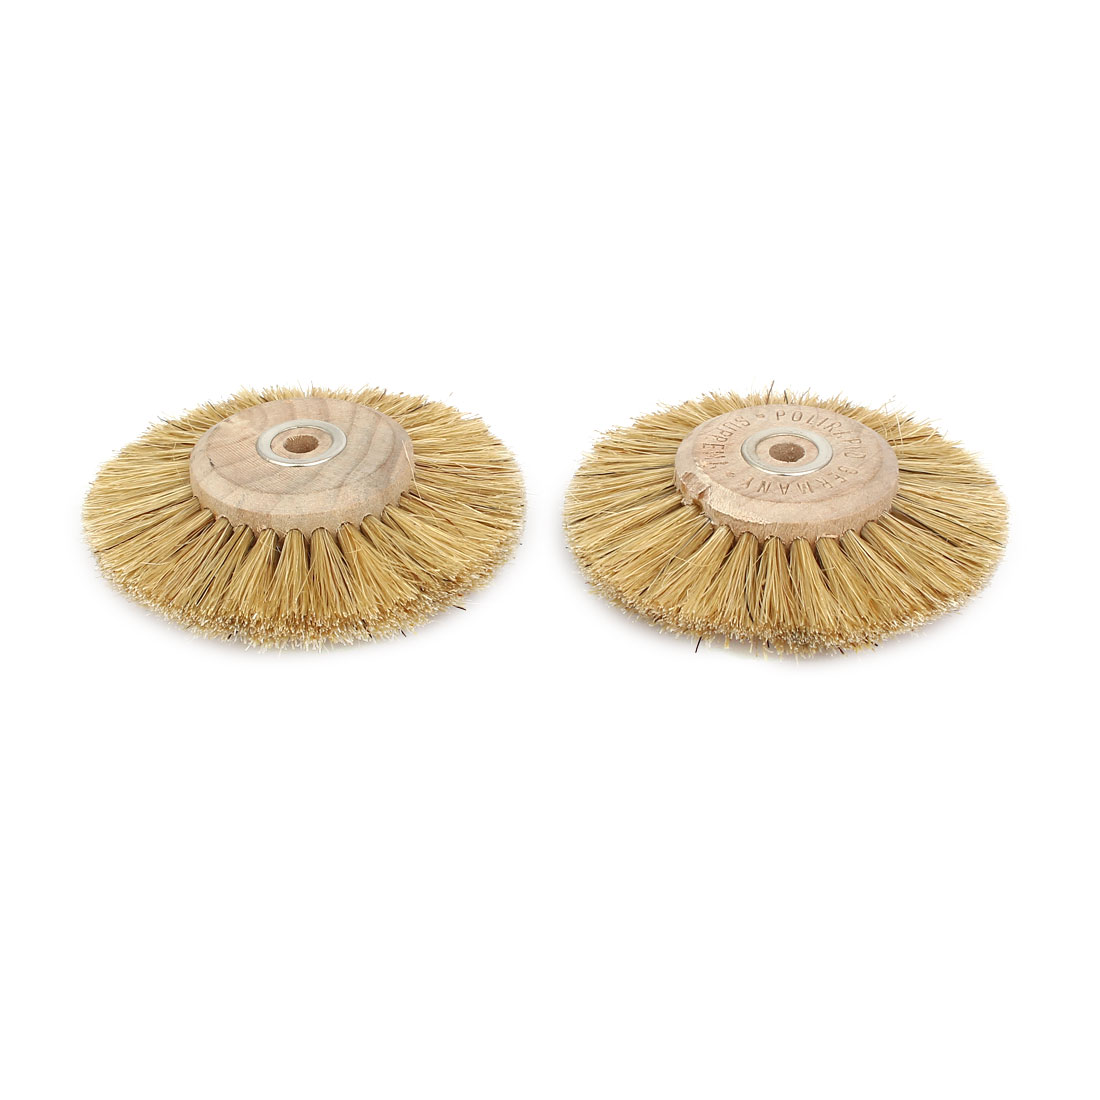 80mm Dia Wooden Hub 4 Rows Bristle Wheel Brush Grinding Cleaning Tool Beige 2pcs